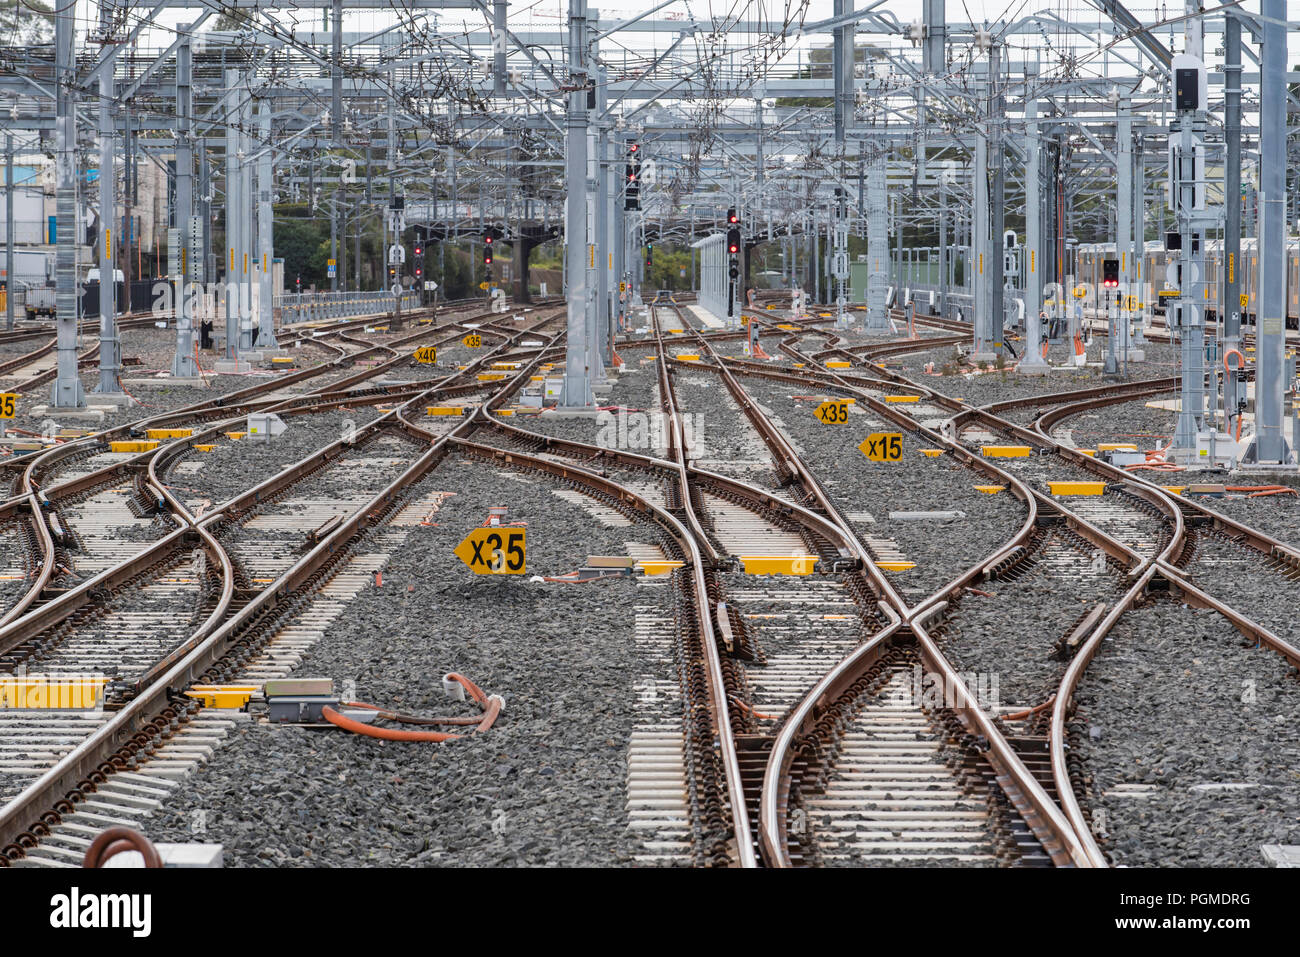 A network of intersecting railway lines or tracks at the end of Hornsby Railway station that lead north to stabling yards and other network stations - Stock Image